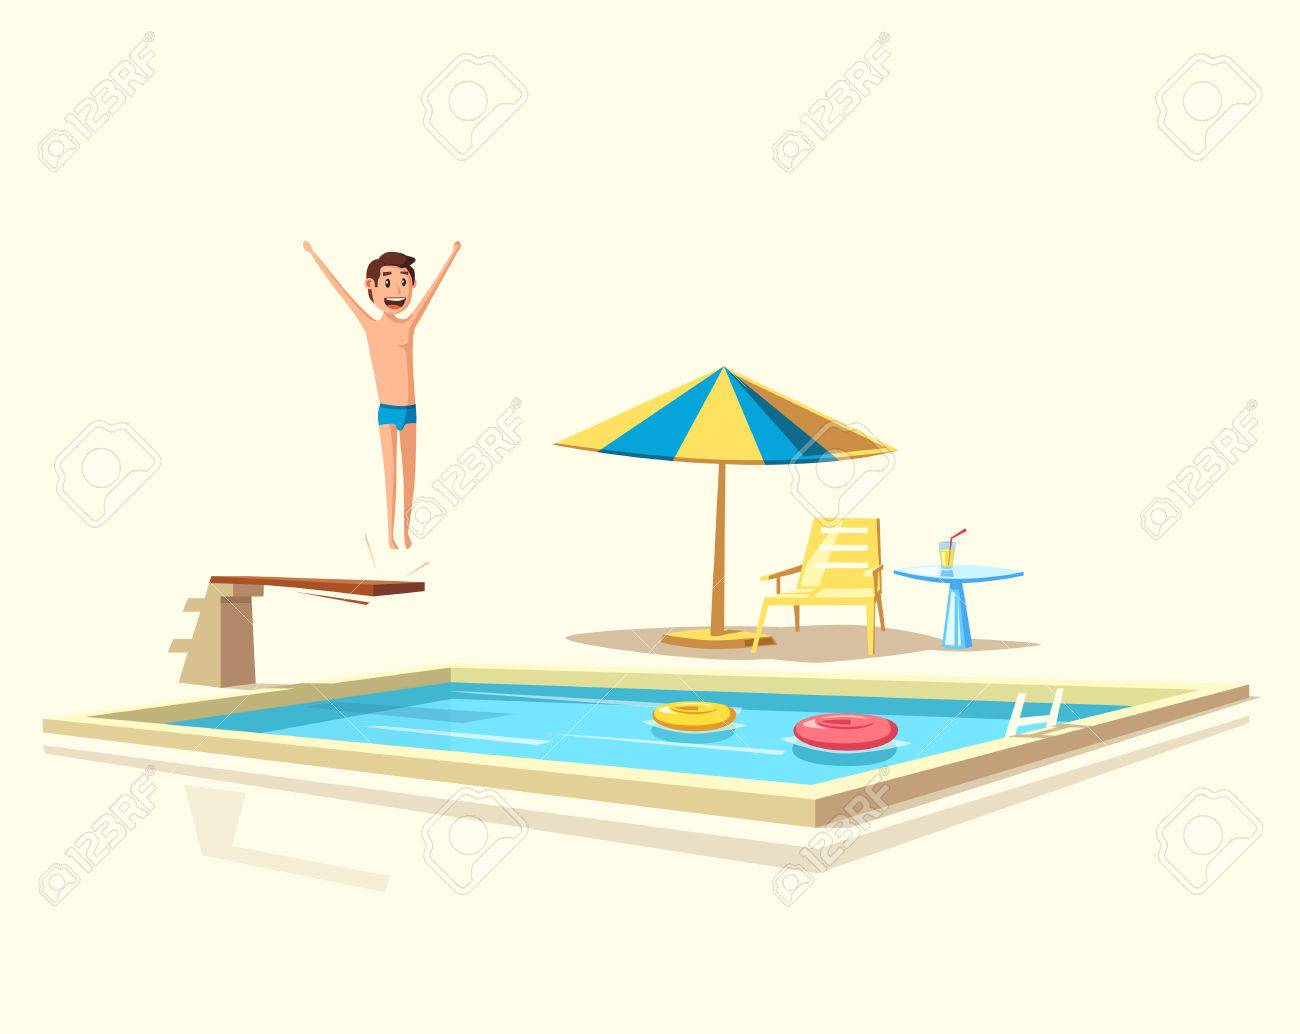 Man Jumping. Swimming Pool With A Diving Board. Cartoon Vector ...